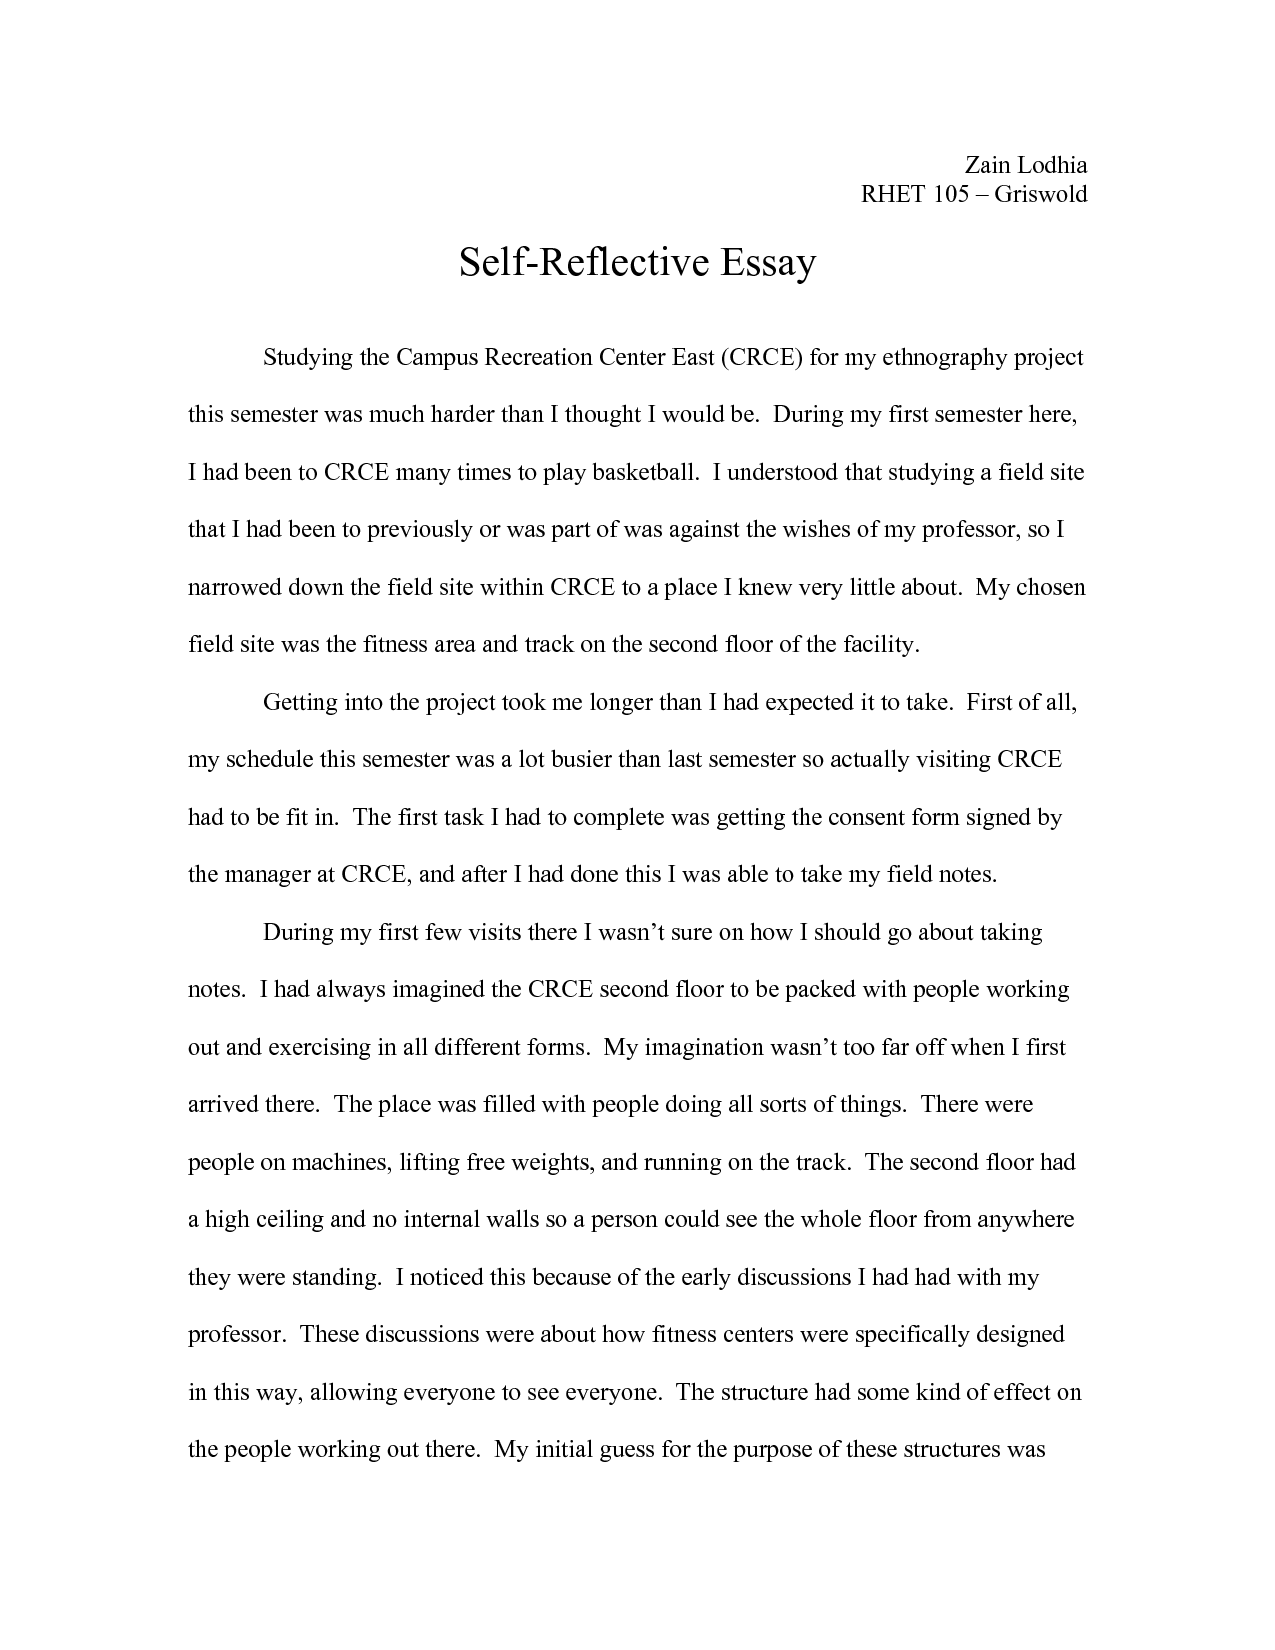 003 Qal0pwnf46 Reflective Essays Beautiful Essay Examples English Pdf For Middle School On Writing Class Full